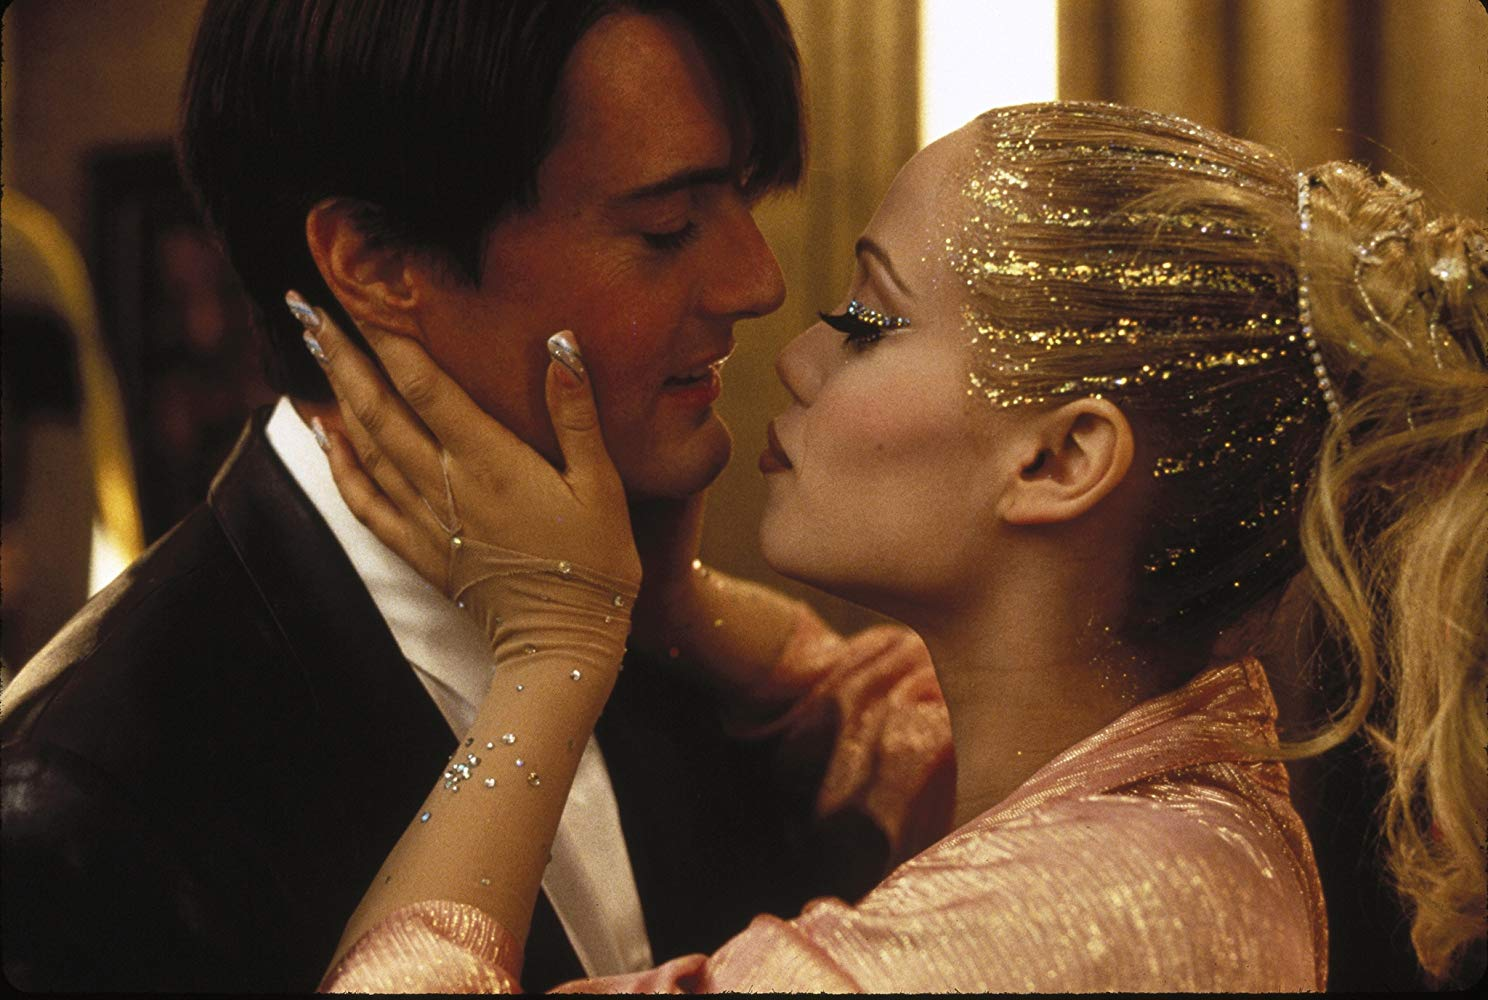 Hyena Selects: Showgirls (1995) met Chris Oosterom